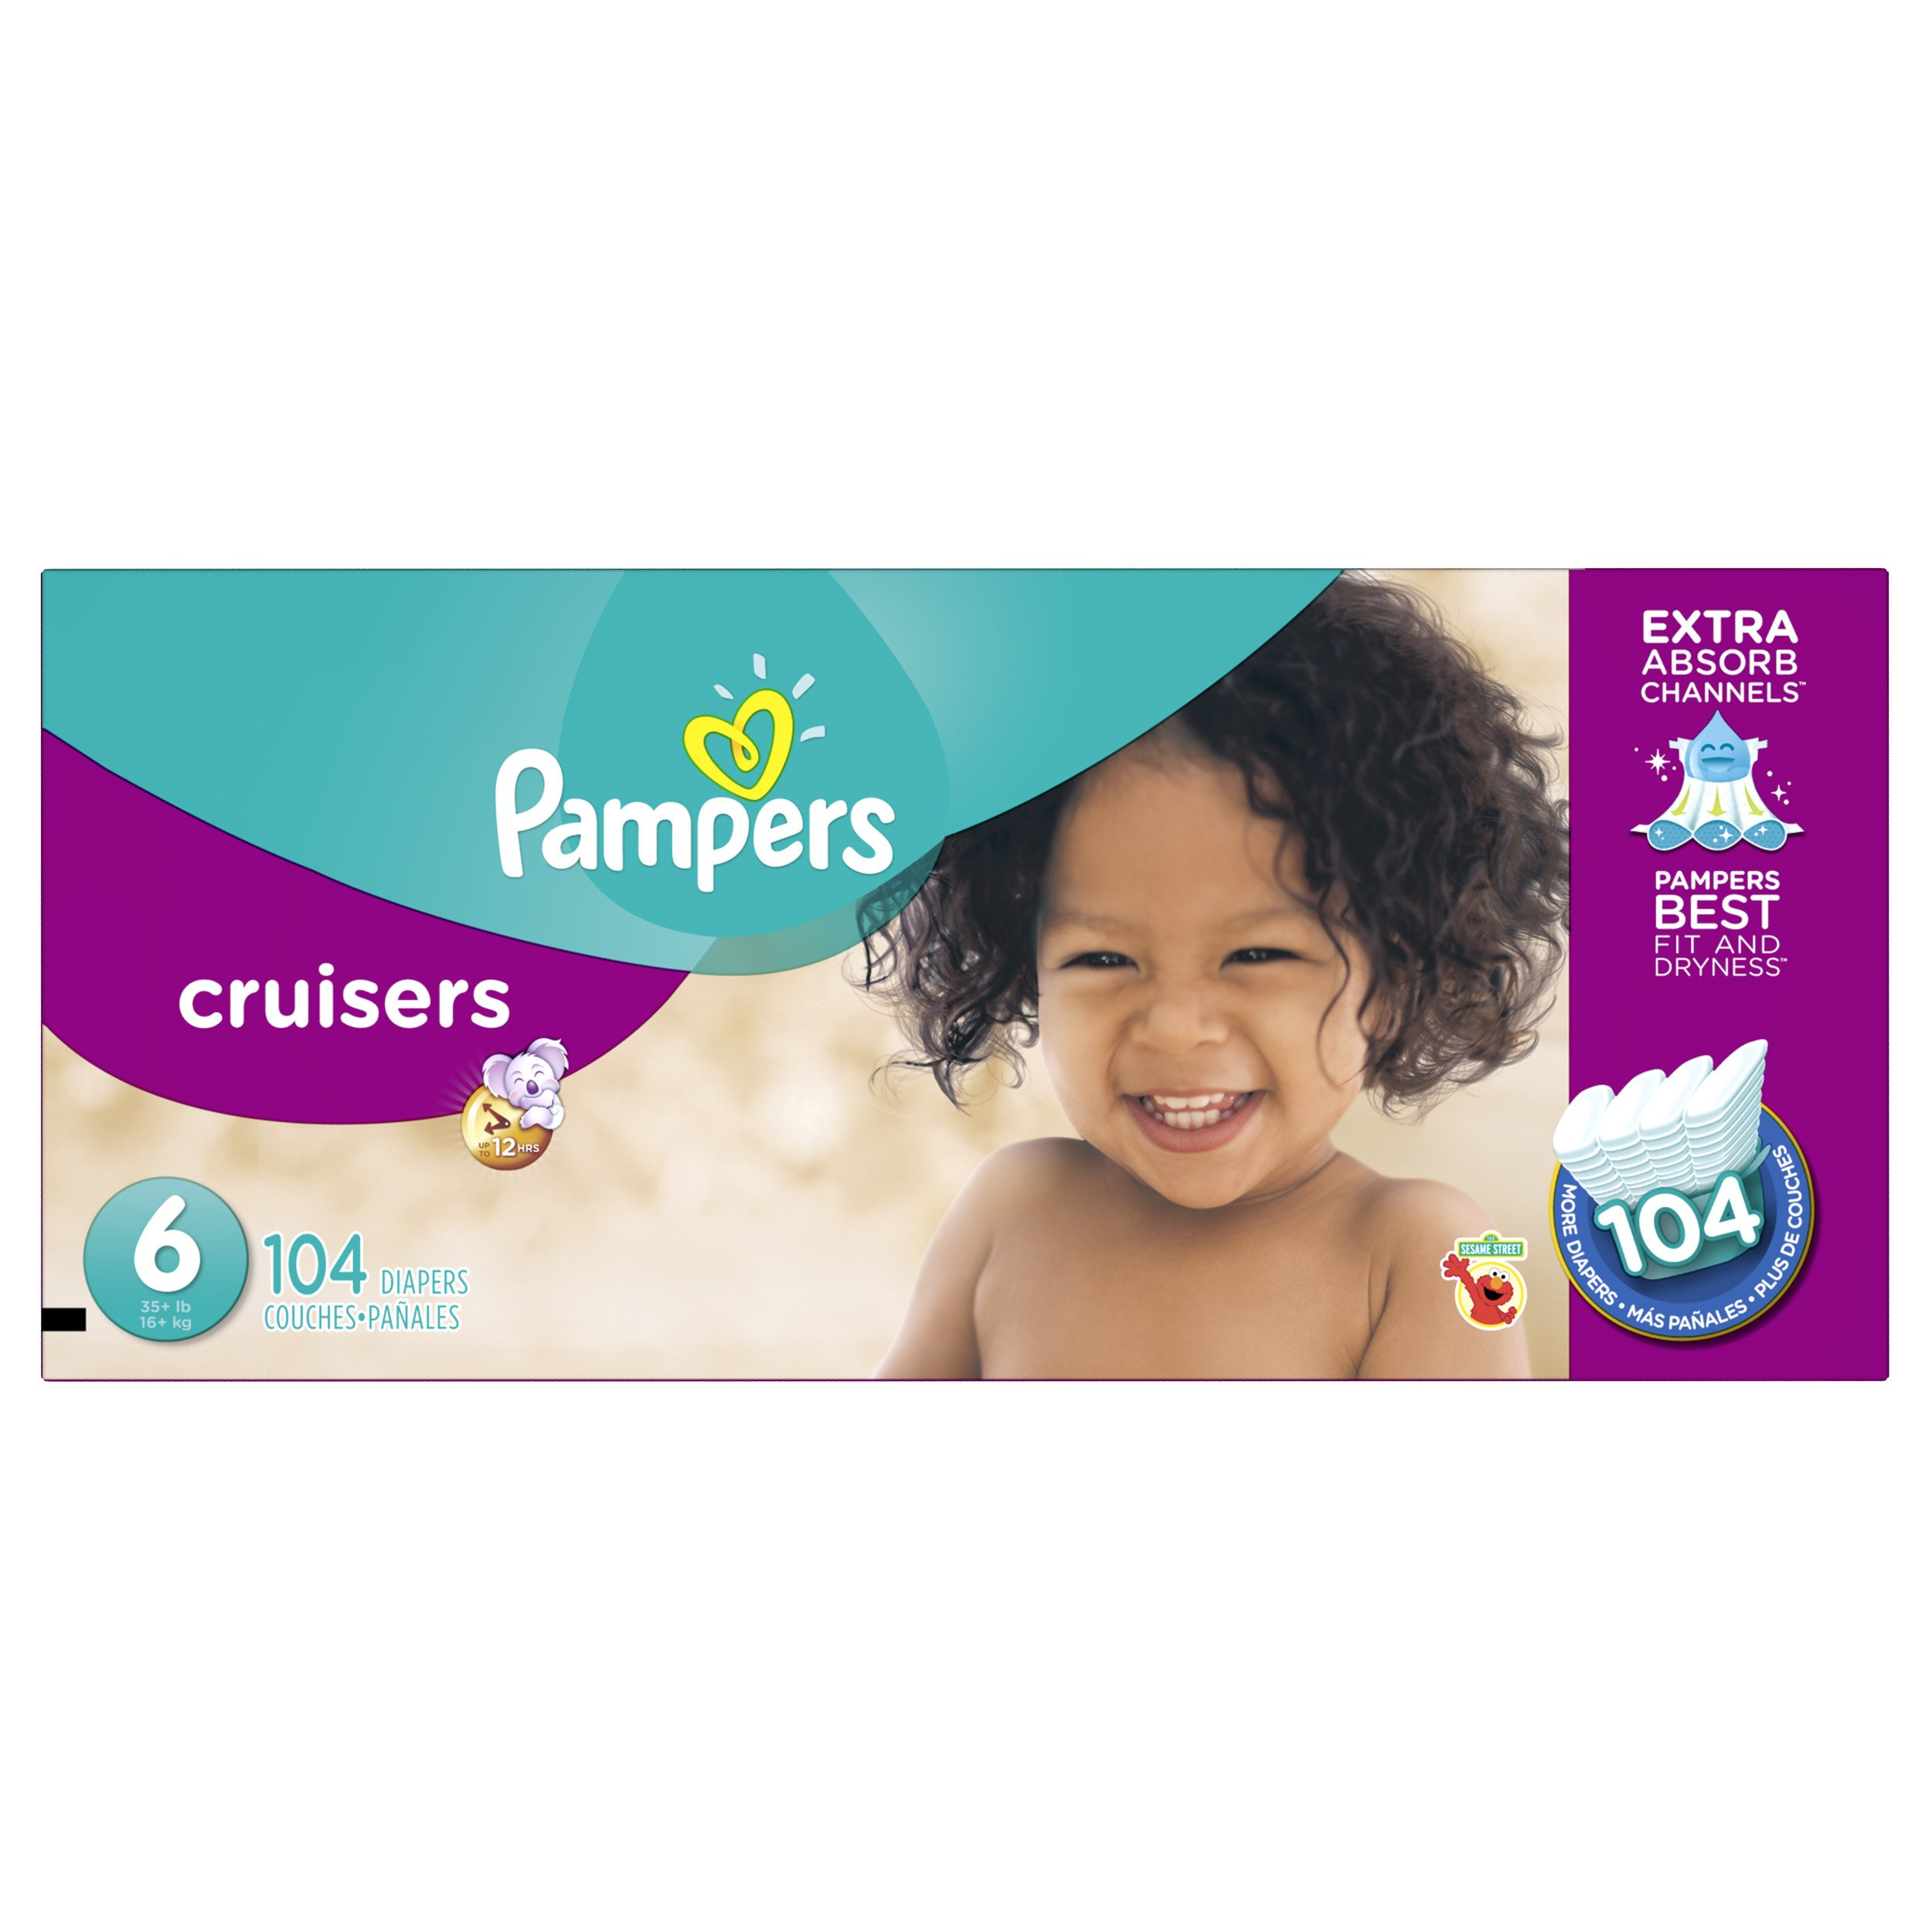 Pampers Cruisers Disposable Diapers Size 6, 104 Count, ECONOMY PACK PLUS